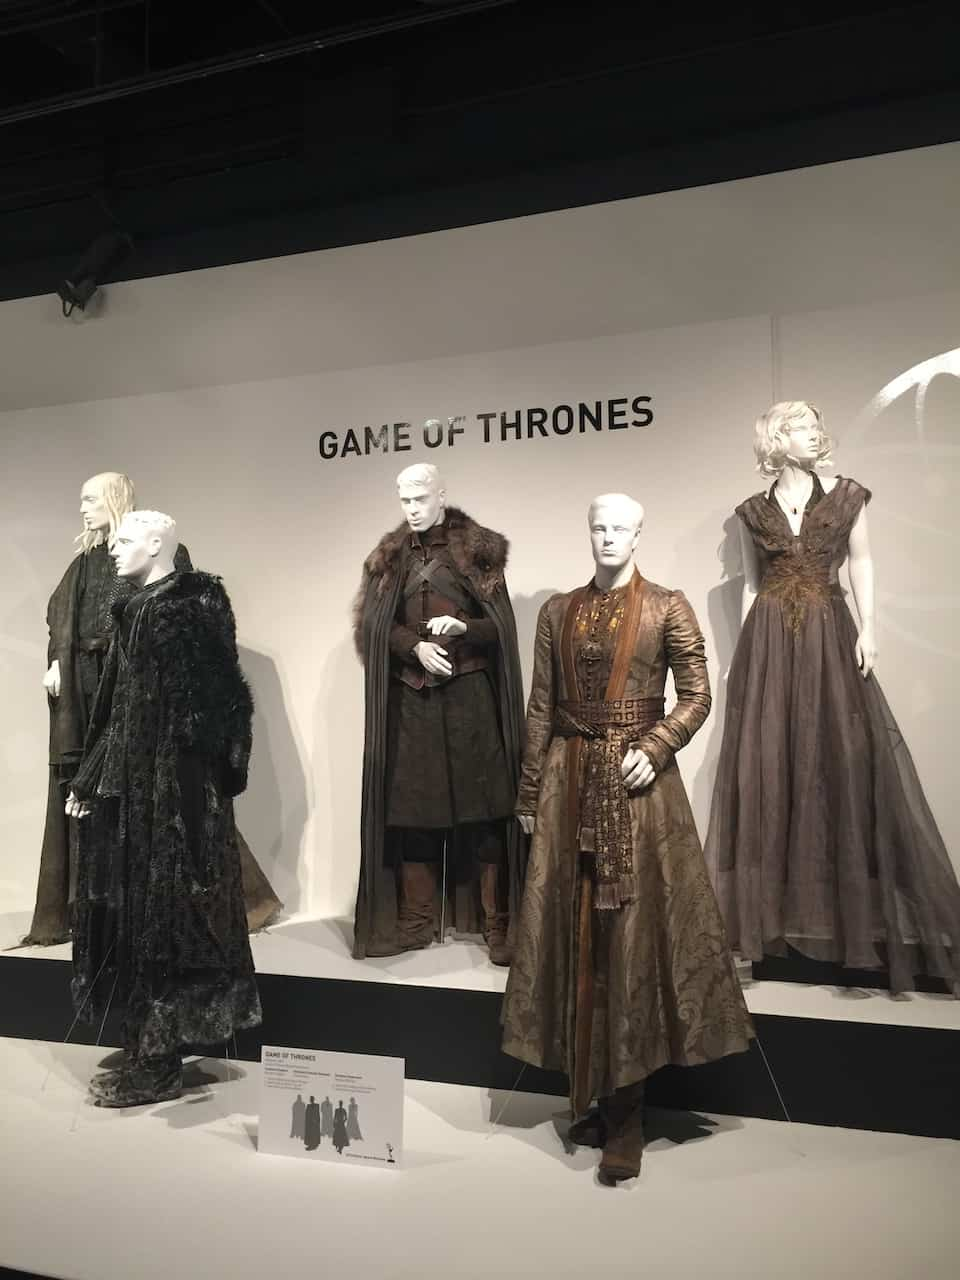 Games of Thrones exhibit at the Fashion Institute of Los Angeles